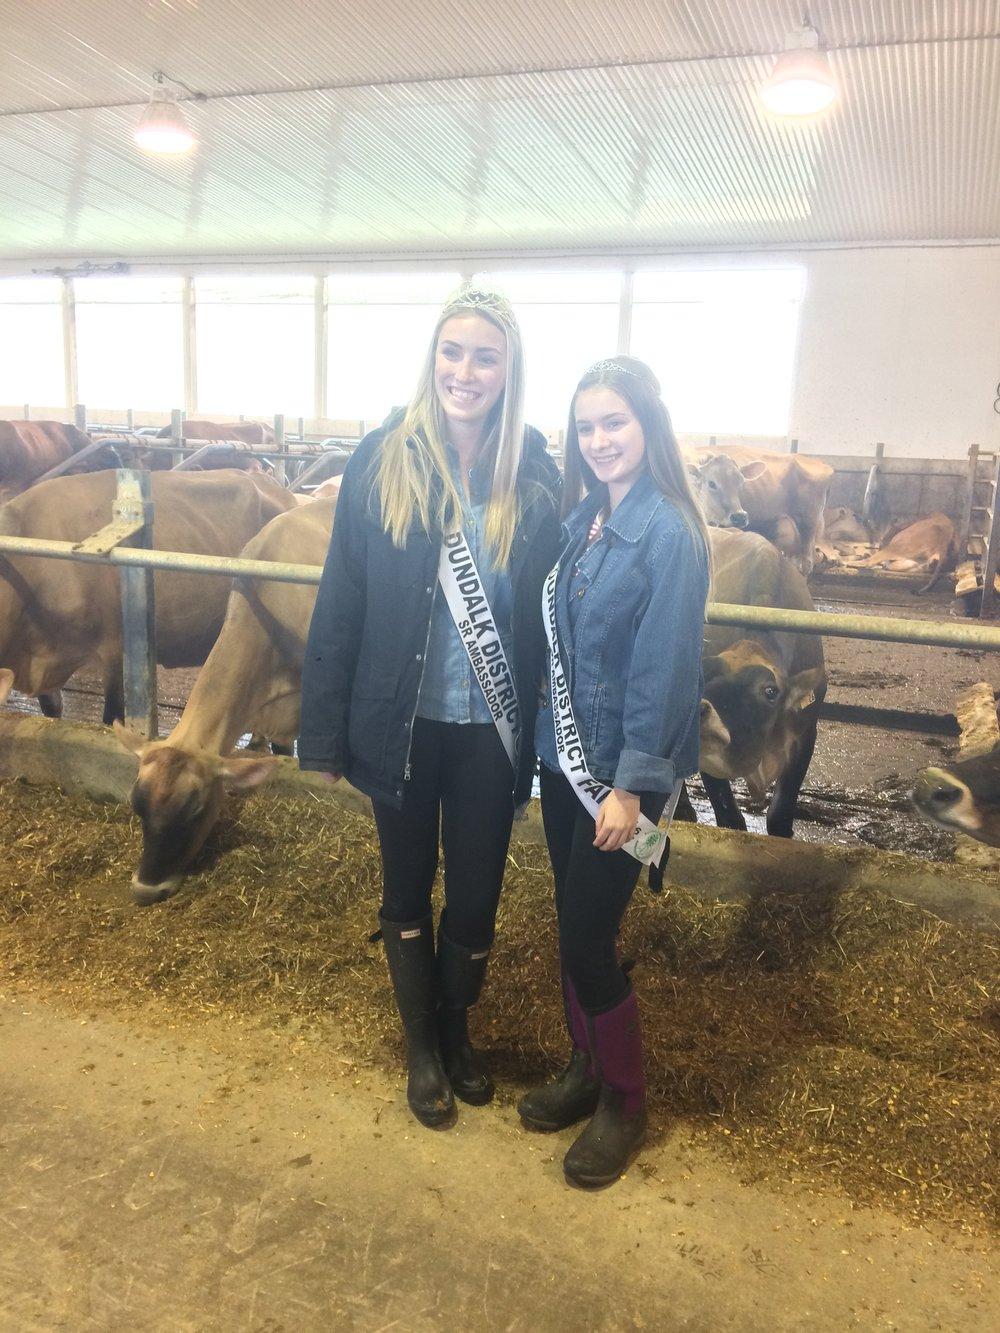 Jennie and Emmilee touring Miller's Dairy during the 2017 District 10 Spring Meeting